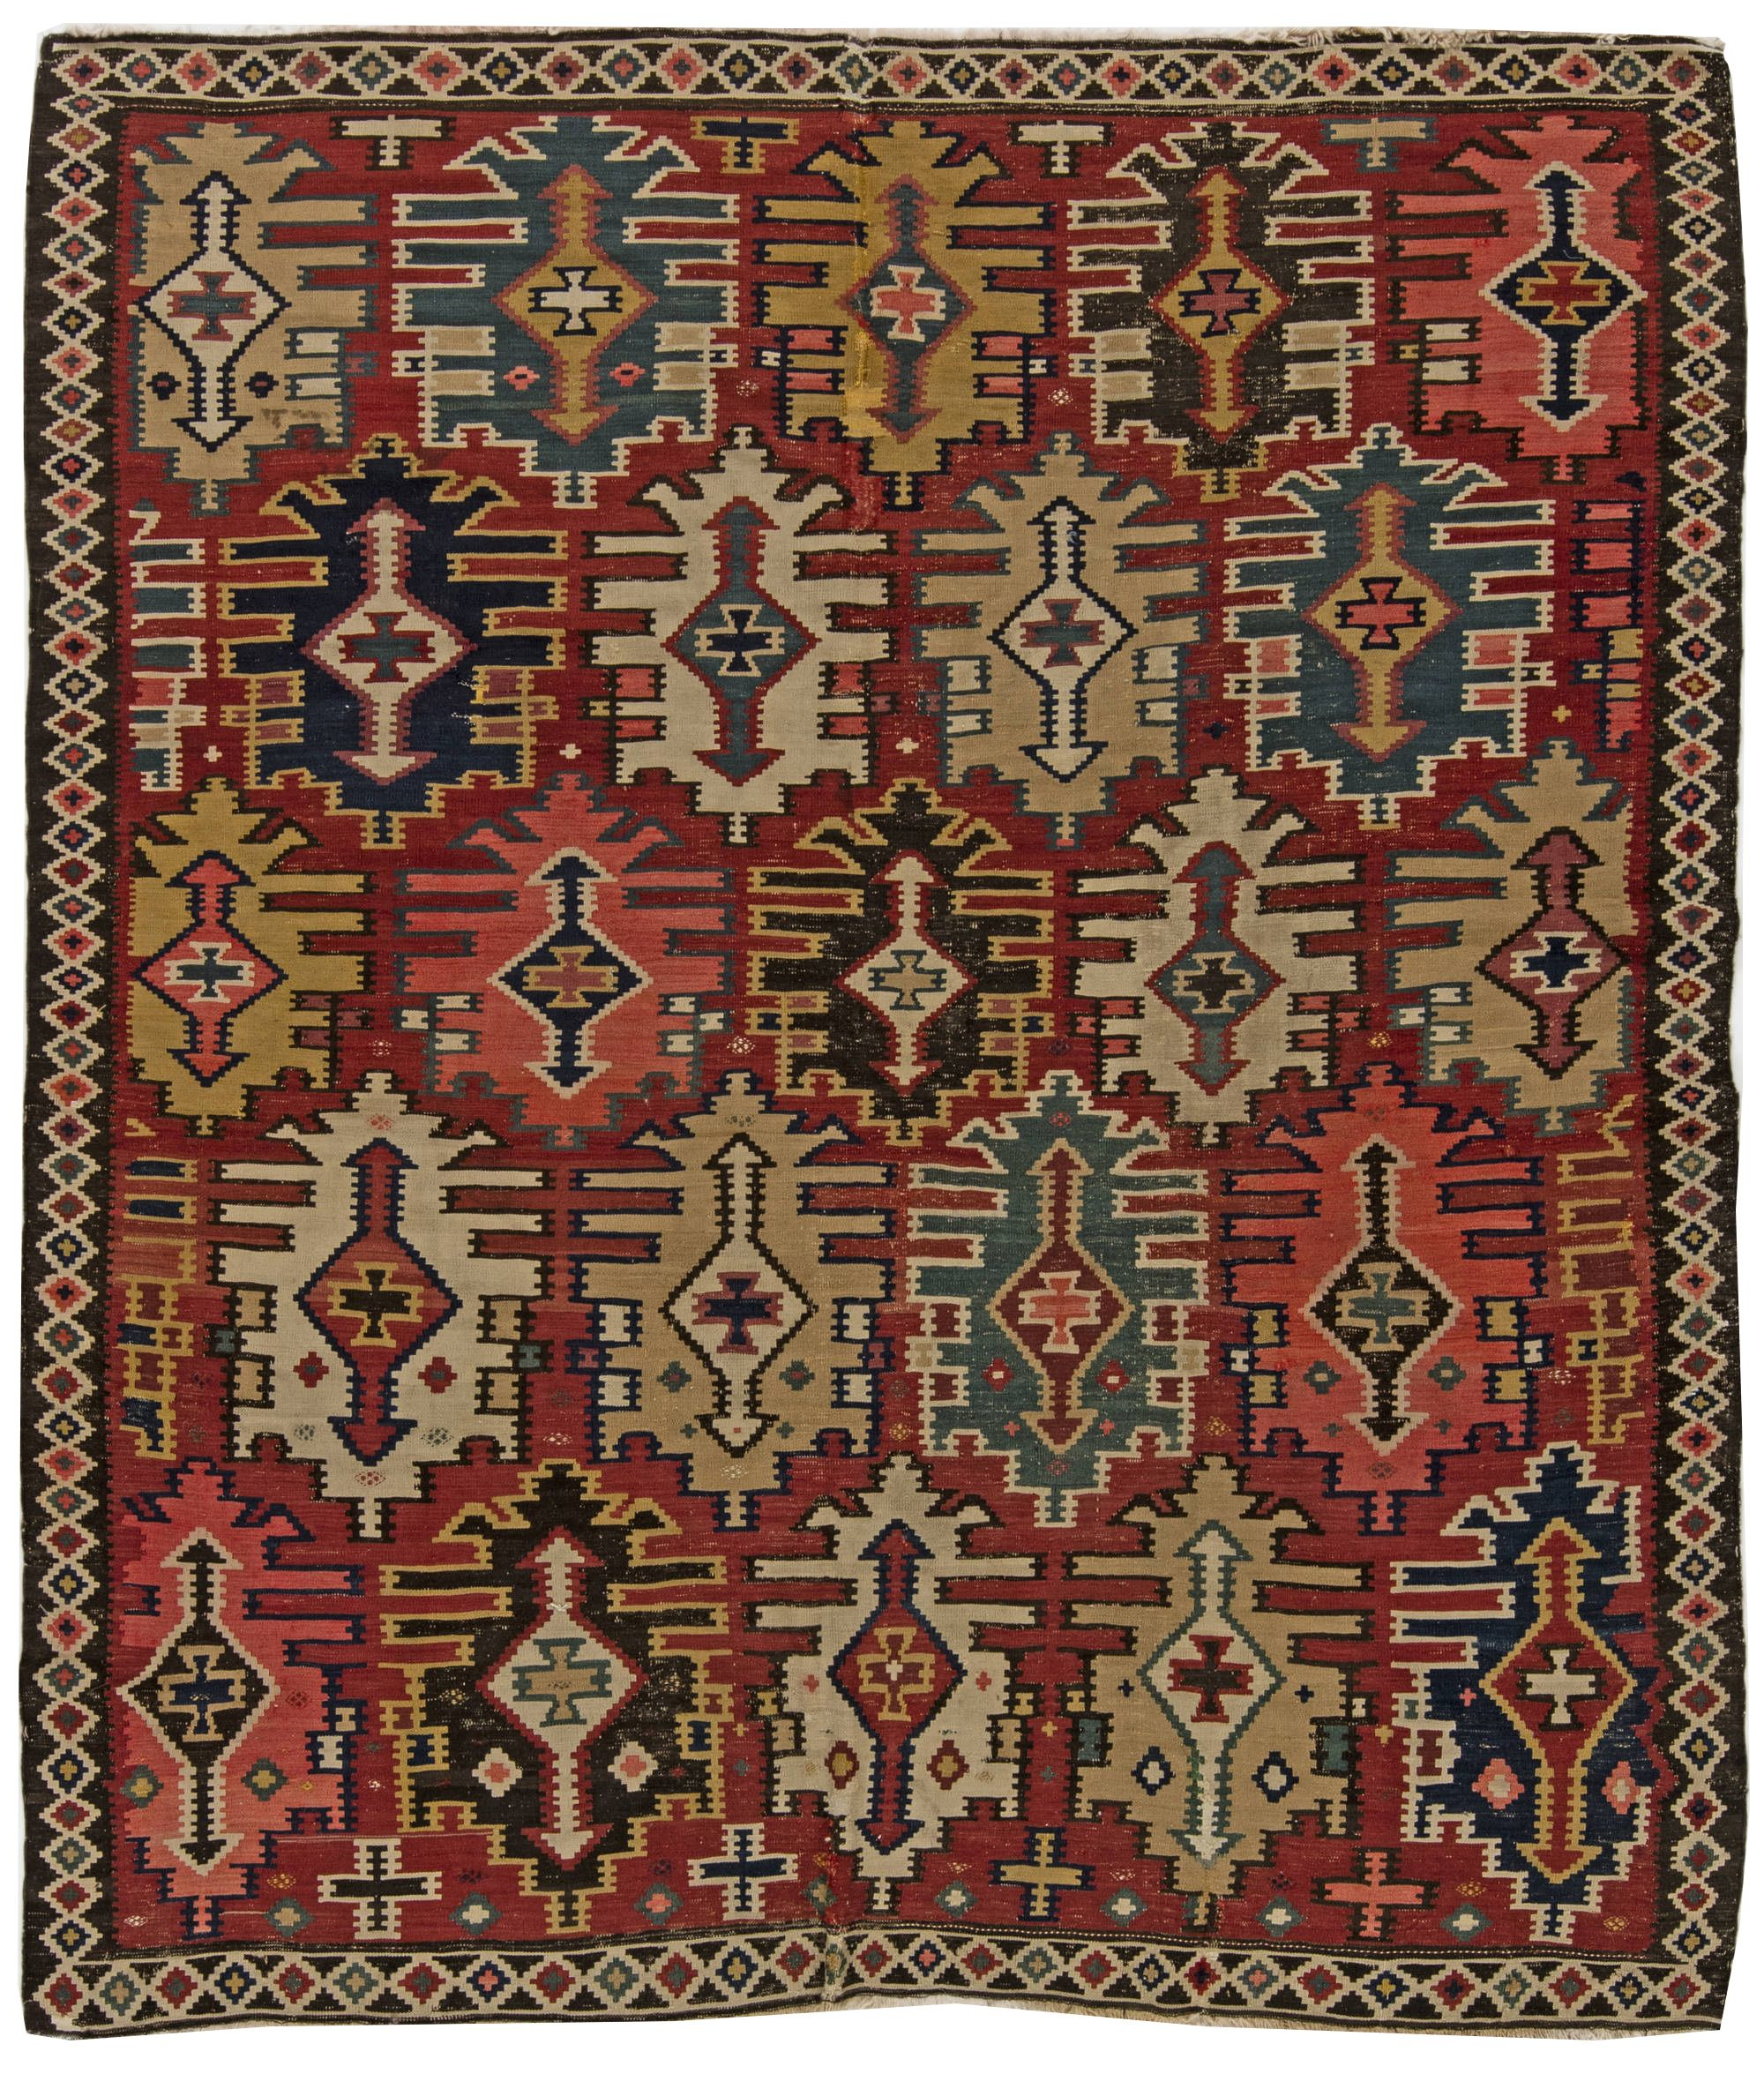 Rugs And Carpets Vintage Turkish Kilim Rug Bb6268 By Doris Leslie Blau